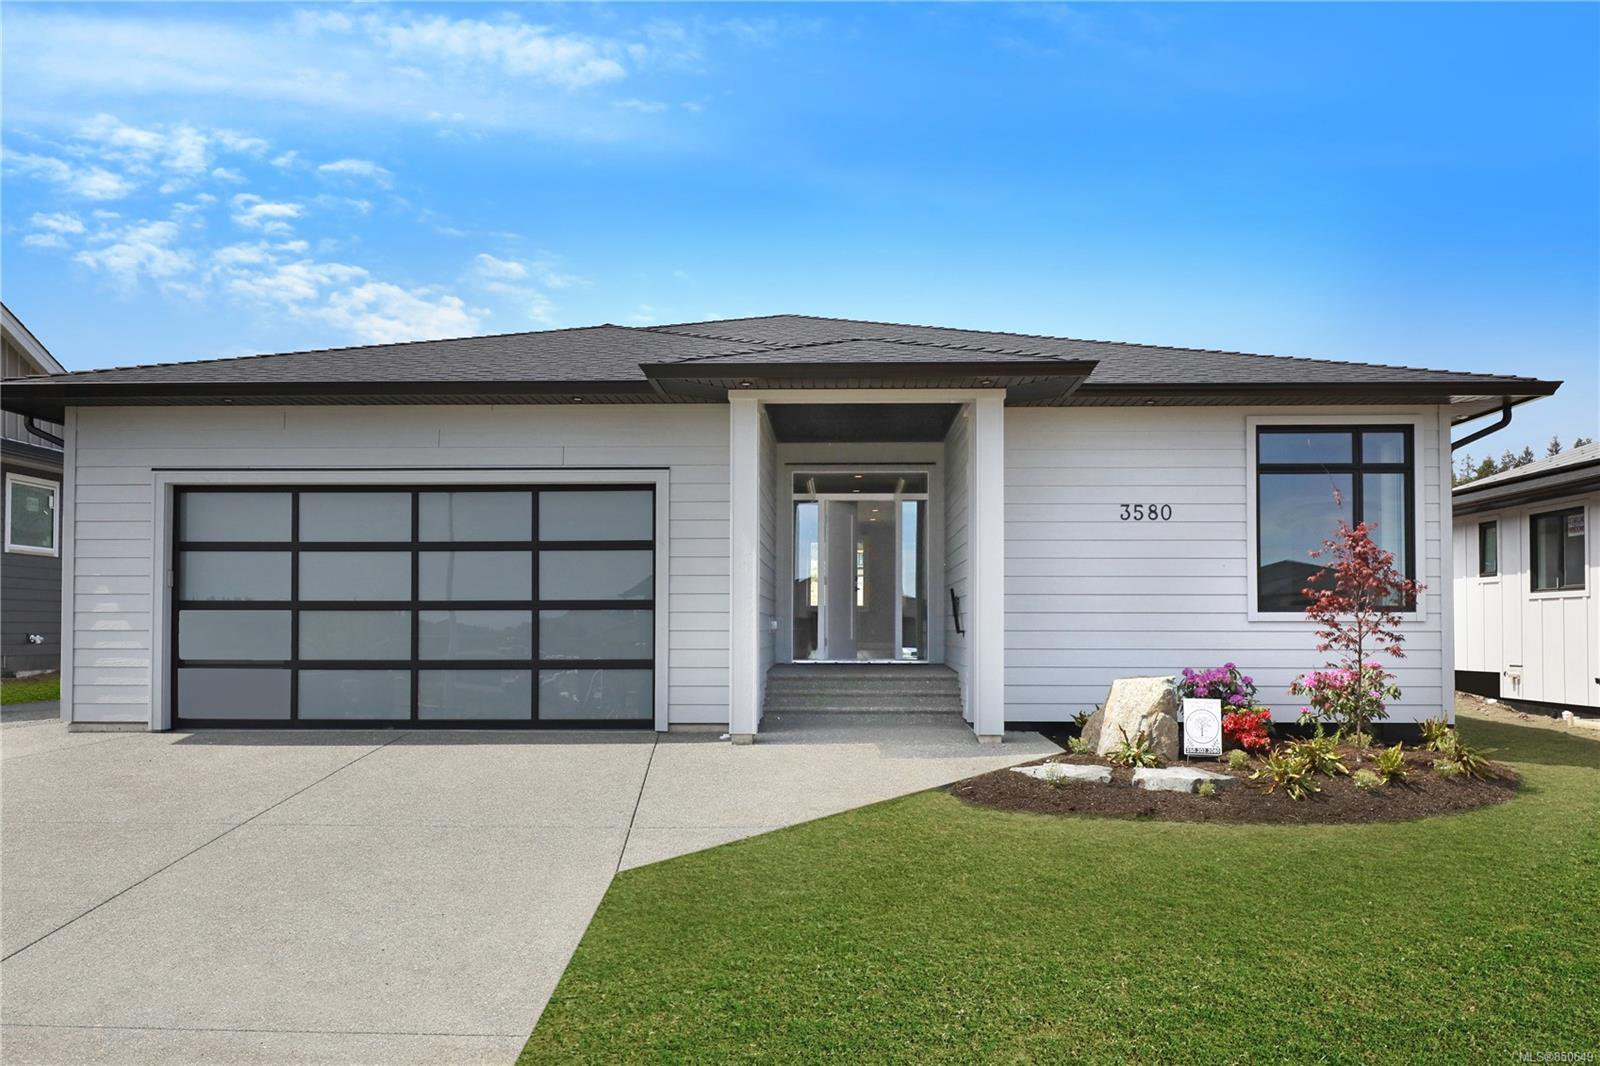 Main Photo: 752 Sitka St in : CR Willow Point Single Family Detached for sale (Campbell River)  : MLS®# 850649